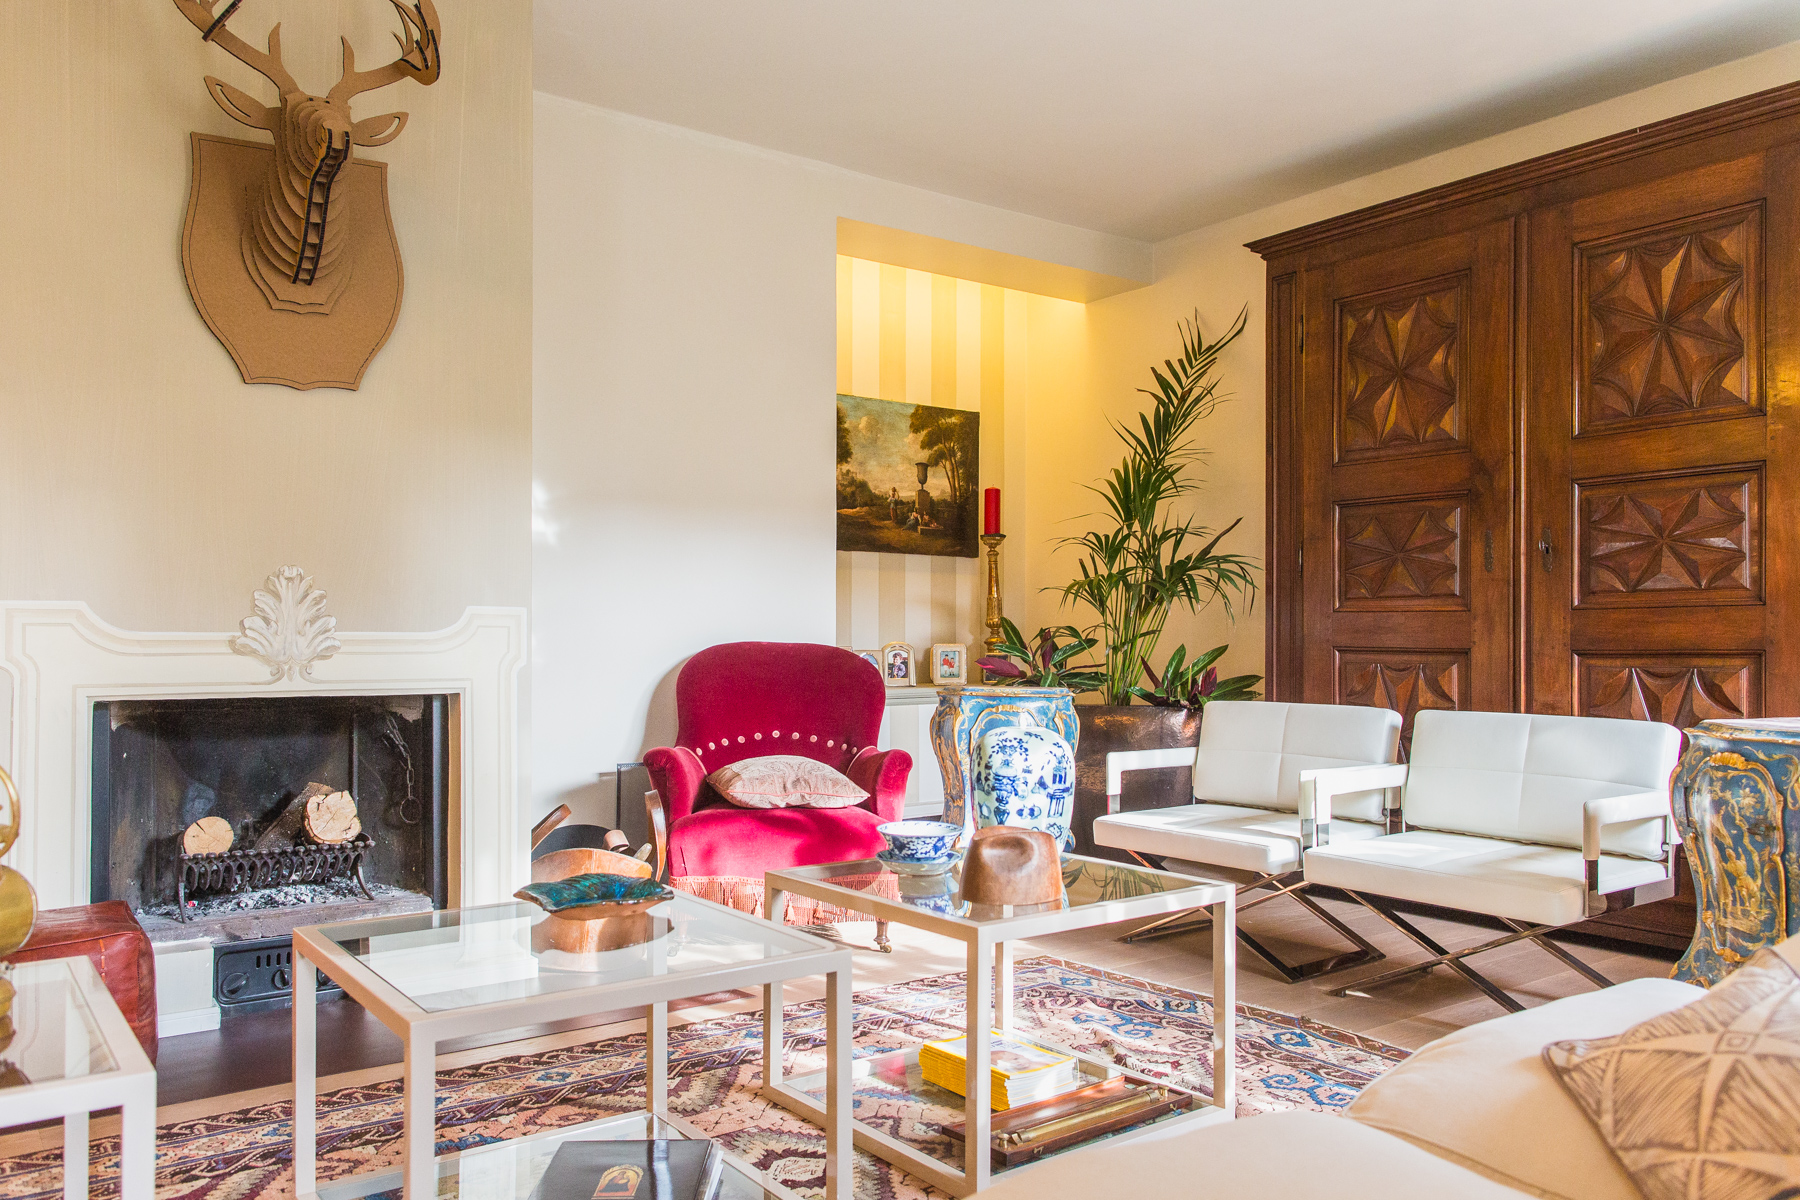 Additional photo for property listing at Refined apartment in the pre-hill of Turin Via Luisa del Carretto Turin, Turin 10131 Italien